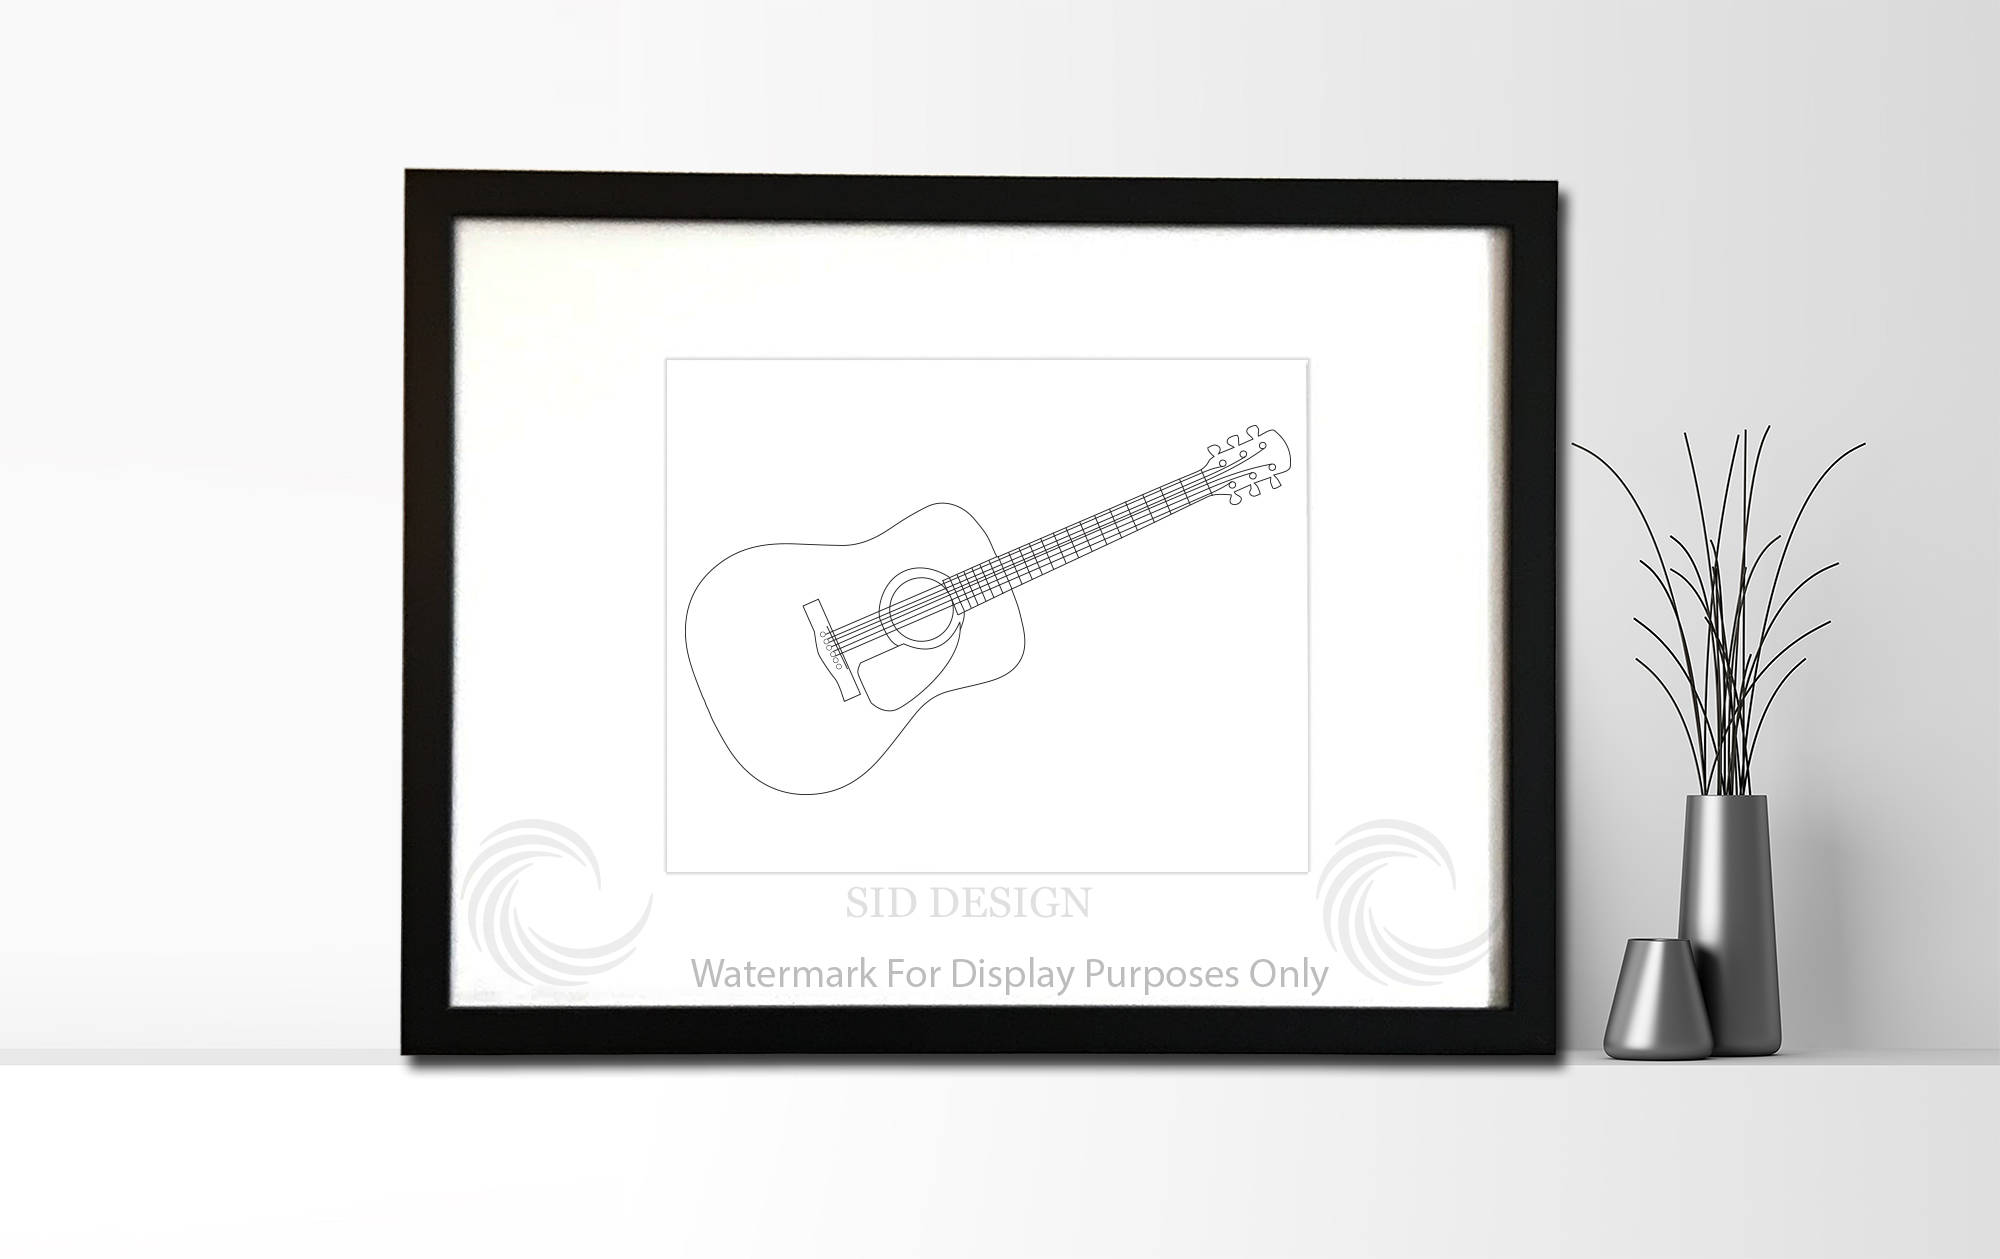 2000x1259 Authentic Sketch Of Fender Dreadnought Acoustic Guitar Etsy